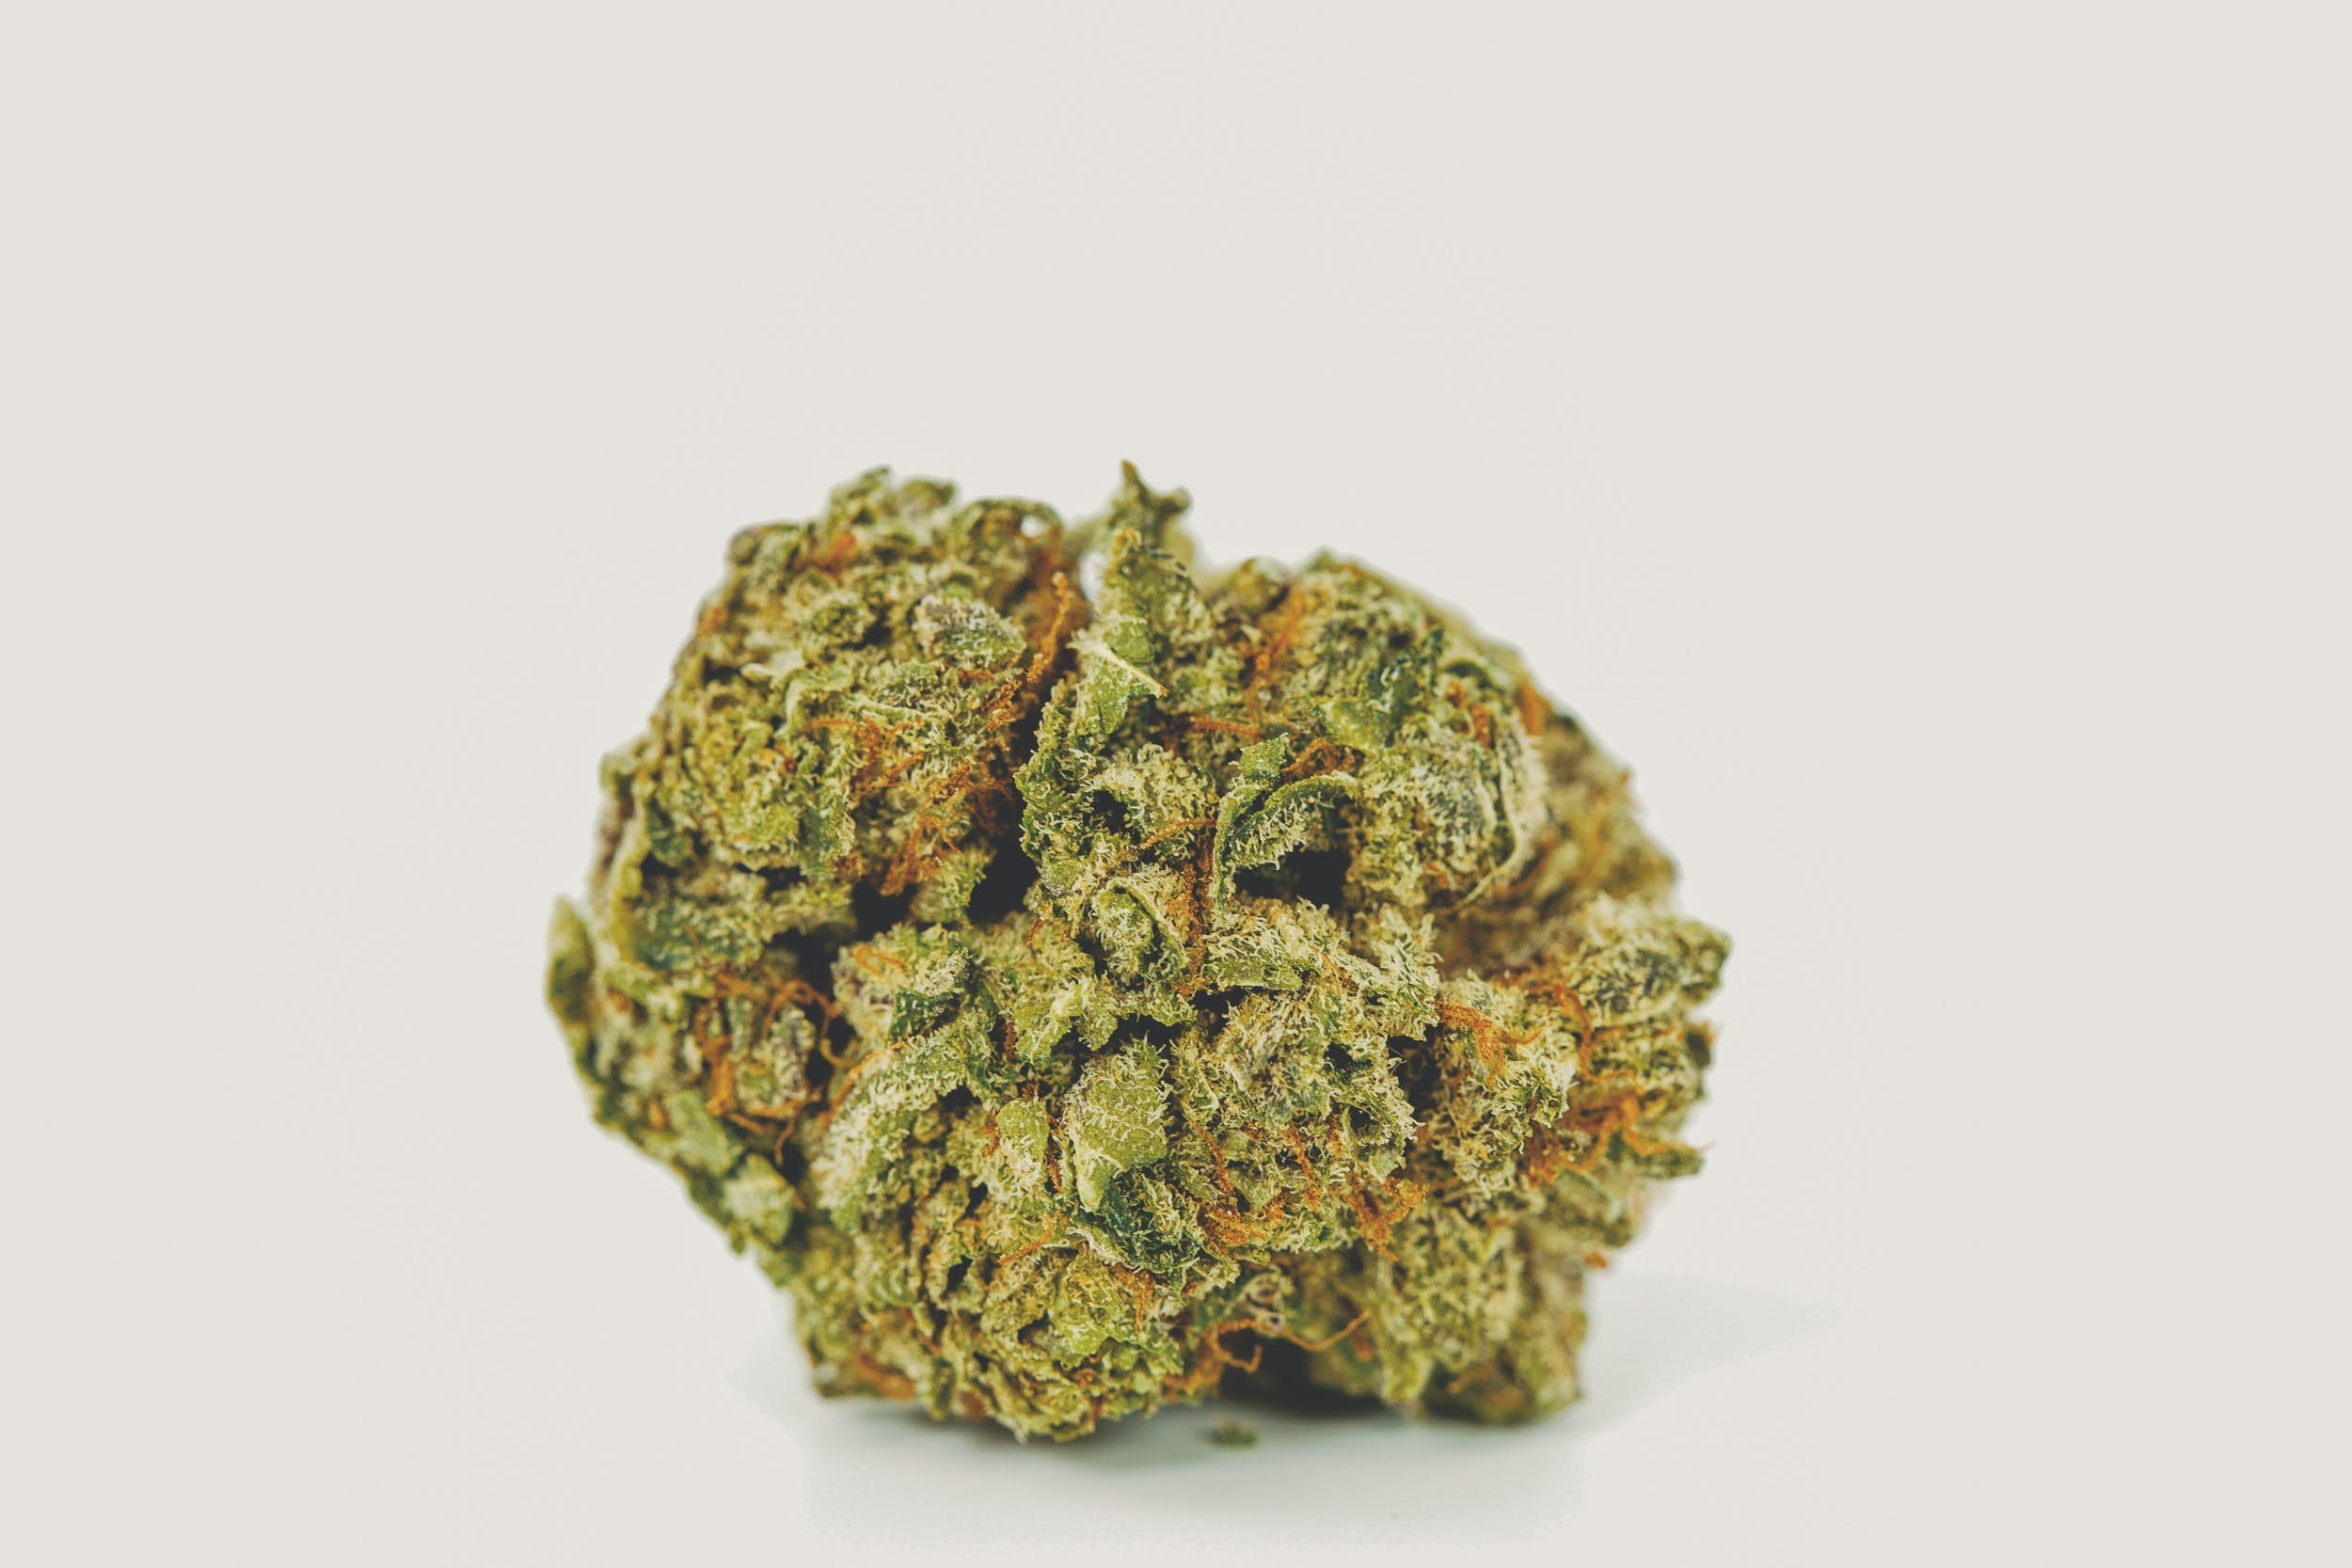 Grand Daddy Purple 1 These are the Best Weed Strains in the World